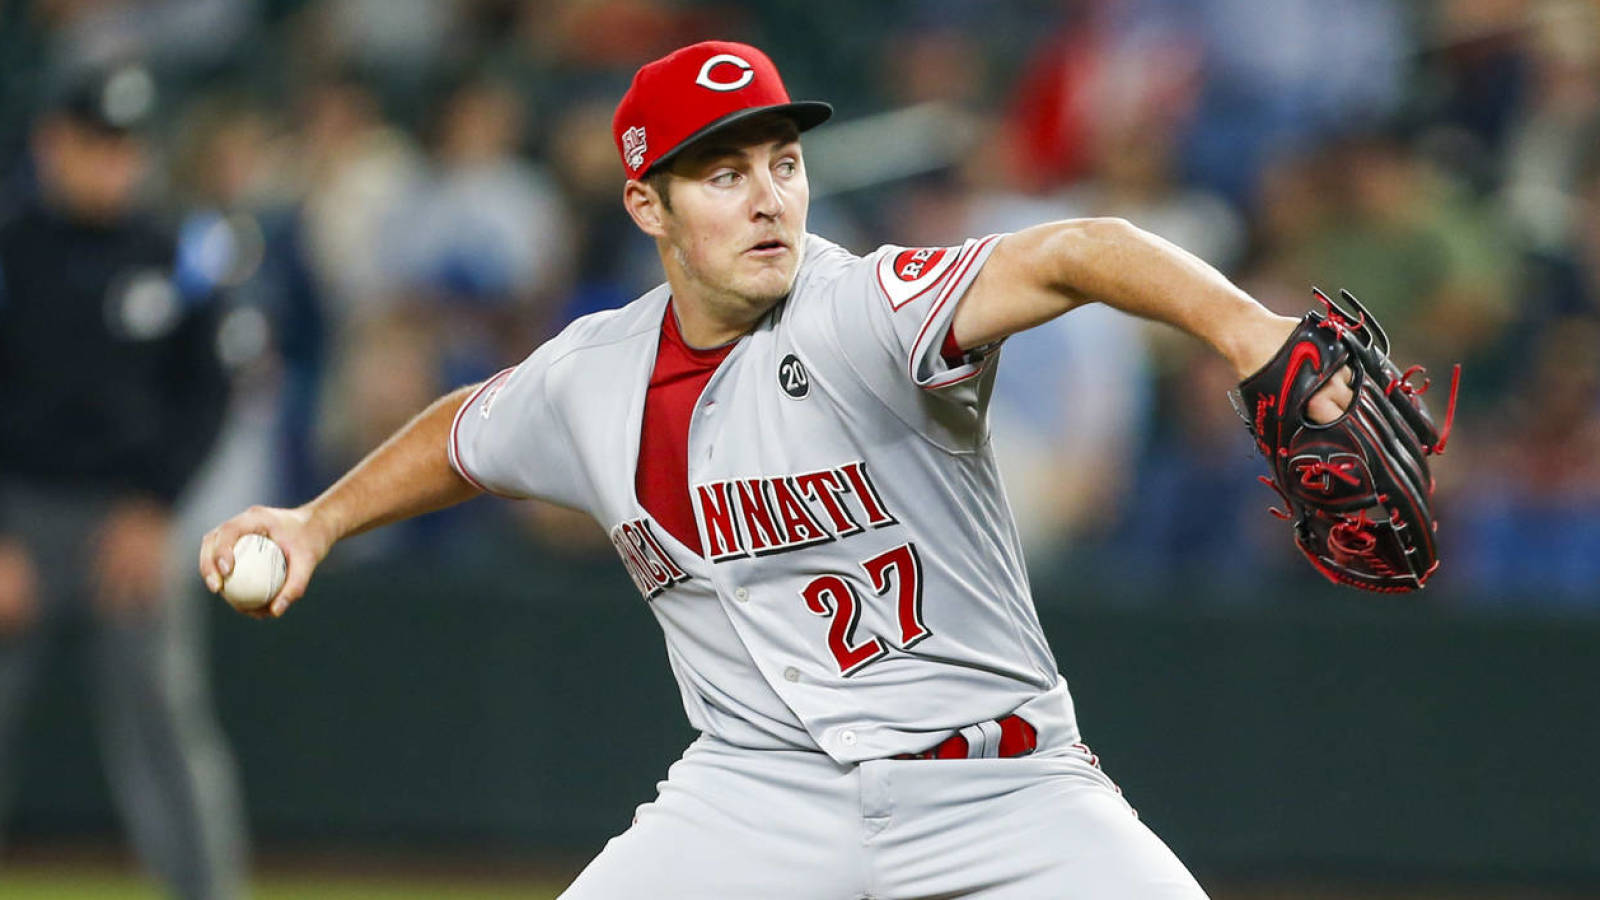 Uncertainty looms for Reds' rotation after 2020